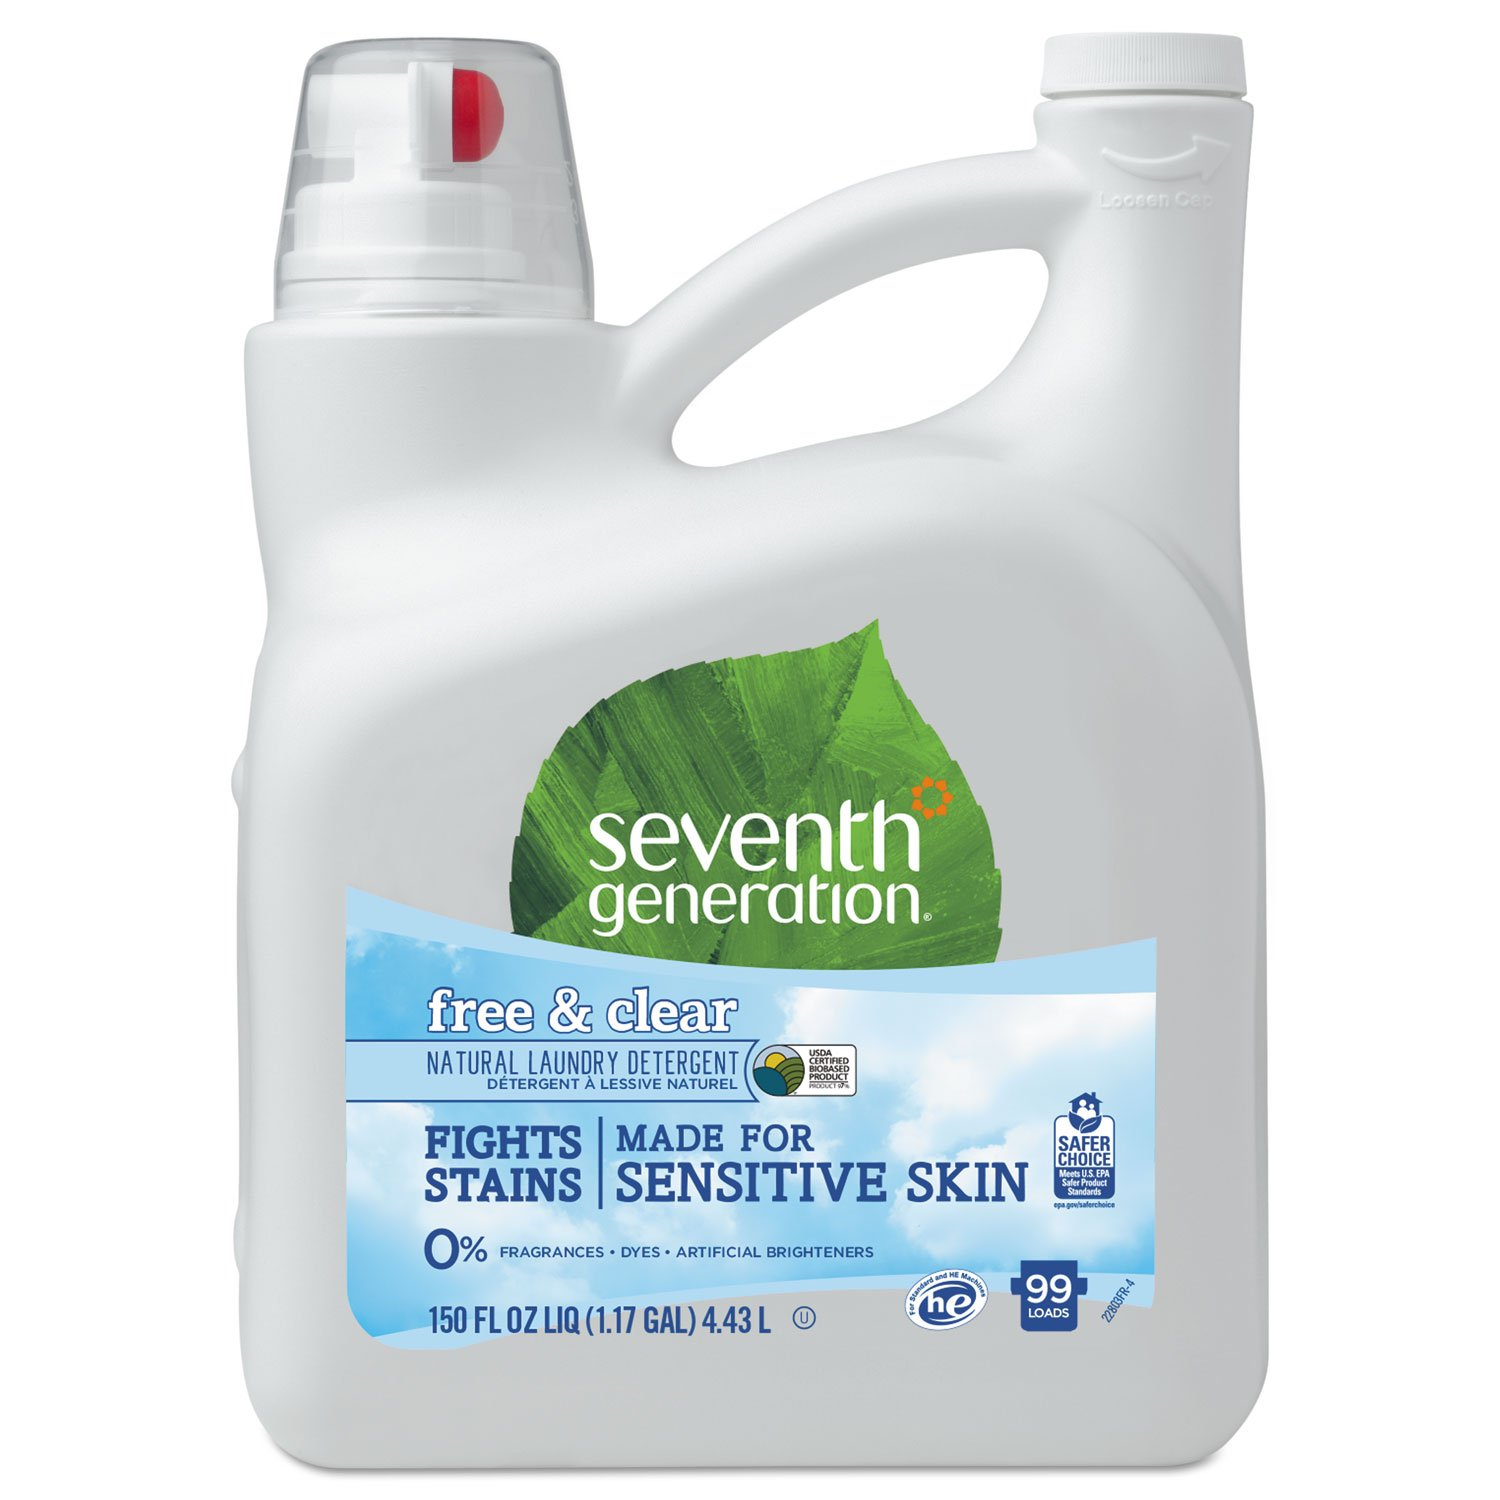 Seventh Generation 150 oz. High Efficiency Liquid Laundry Detergent, Clear, SEV 22803 by Seventh Generation